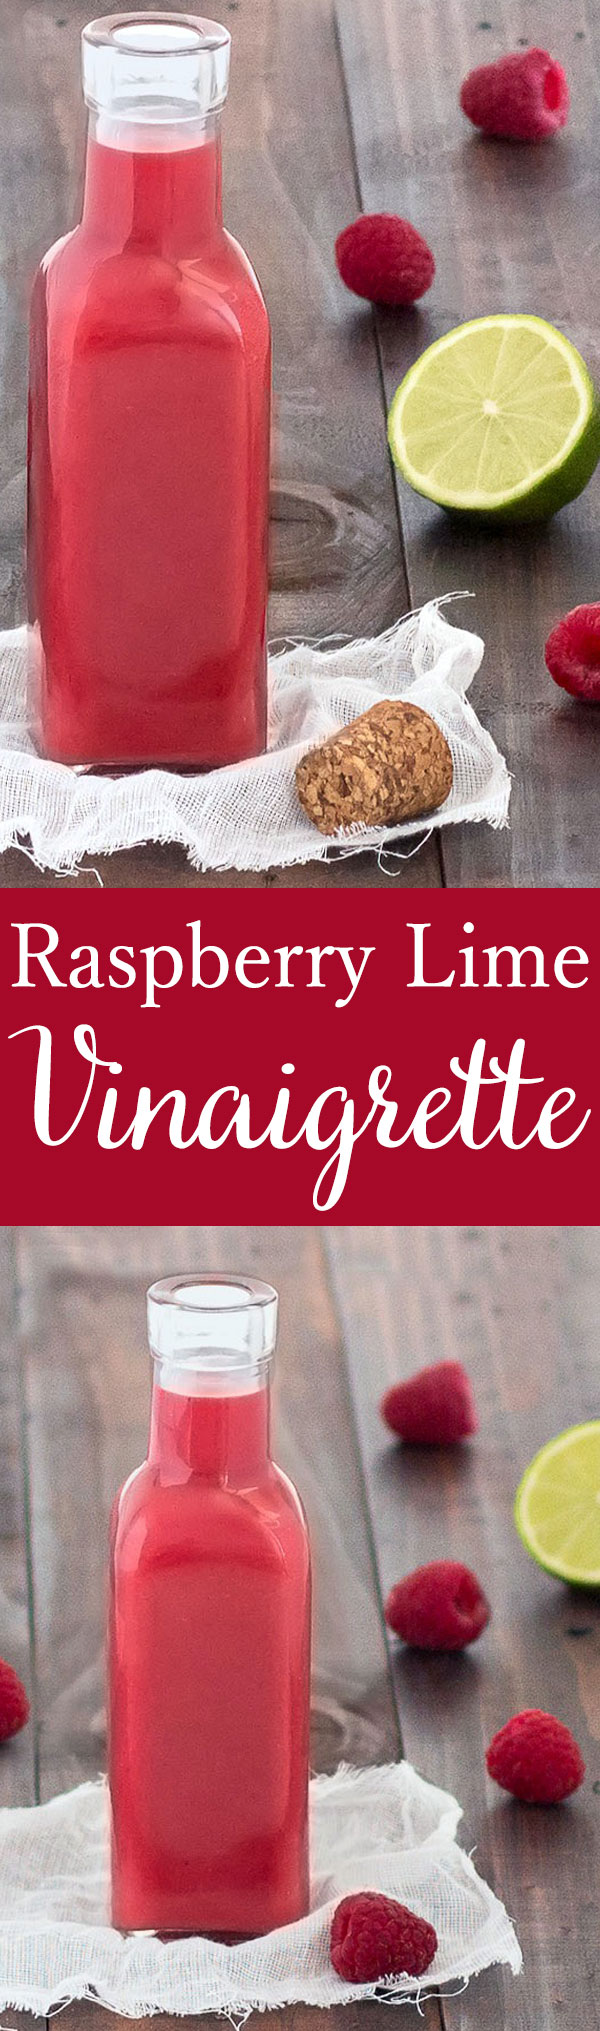 This raspberry lime vinaigrette is fruity, tangy and sweet. Enjoy it drizzled on salads, meats, fish or grilled vegetables.